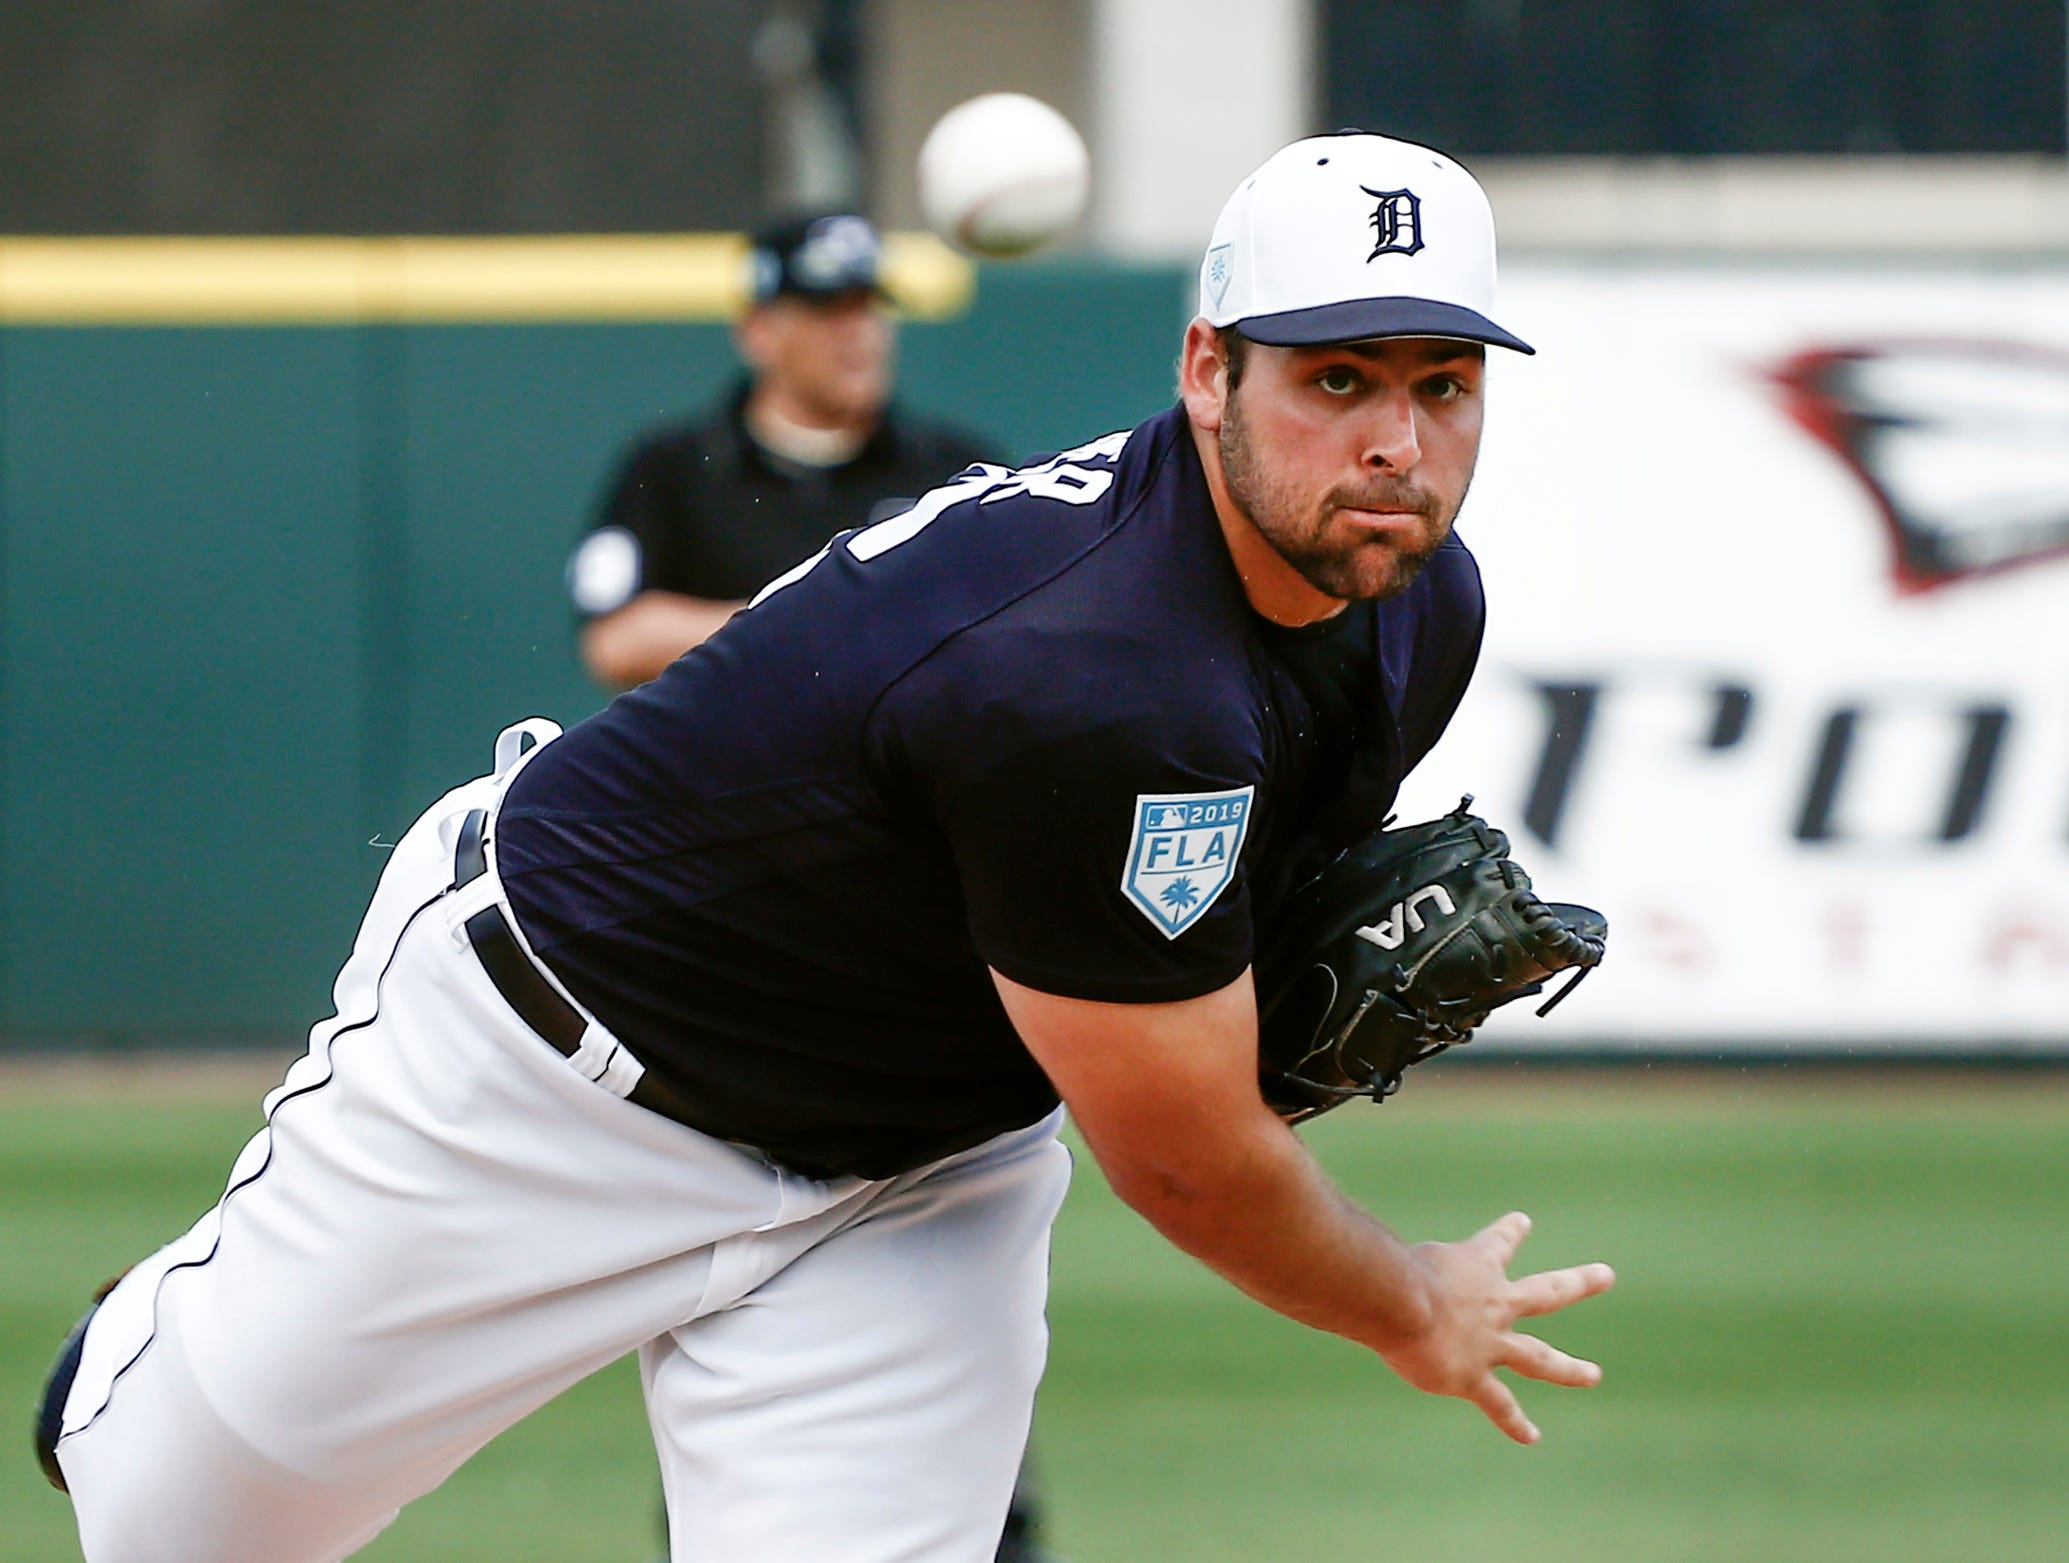 Detroit Tigers pitcher Michael Fulmer warms up before the first inning against the New York Yankees in Lakeland, Fla., Feb. 27, 2019.